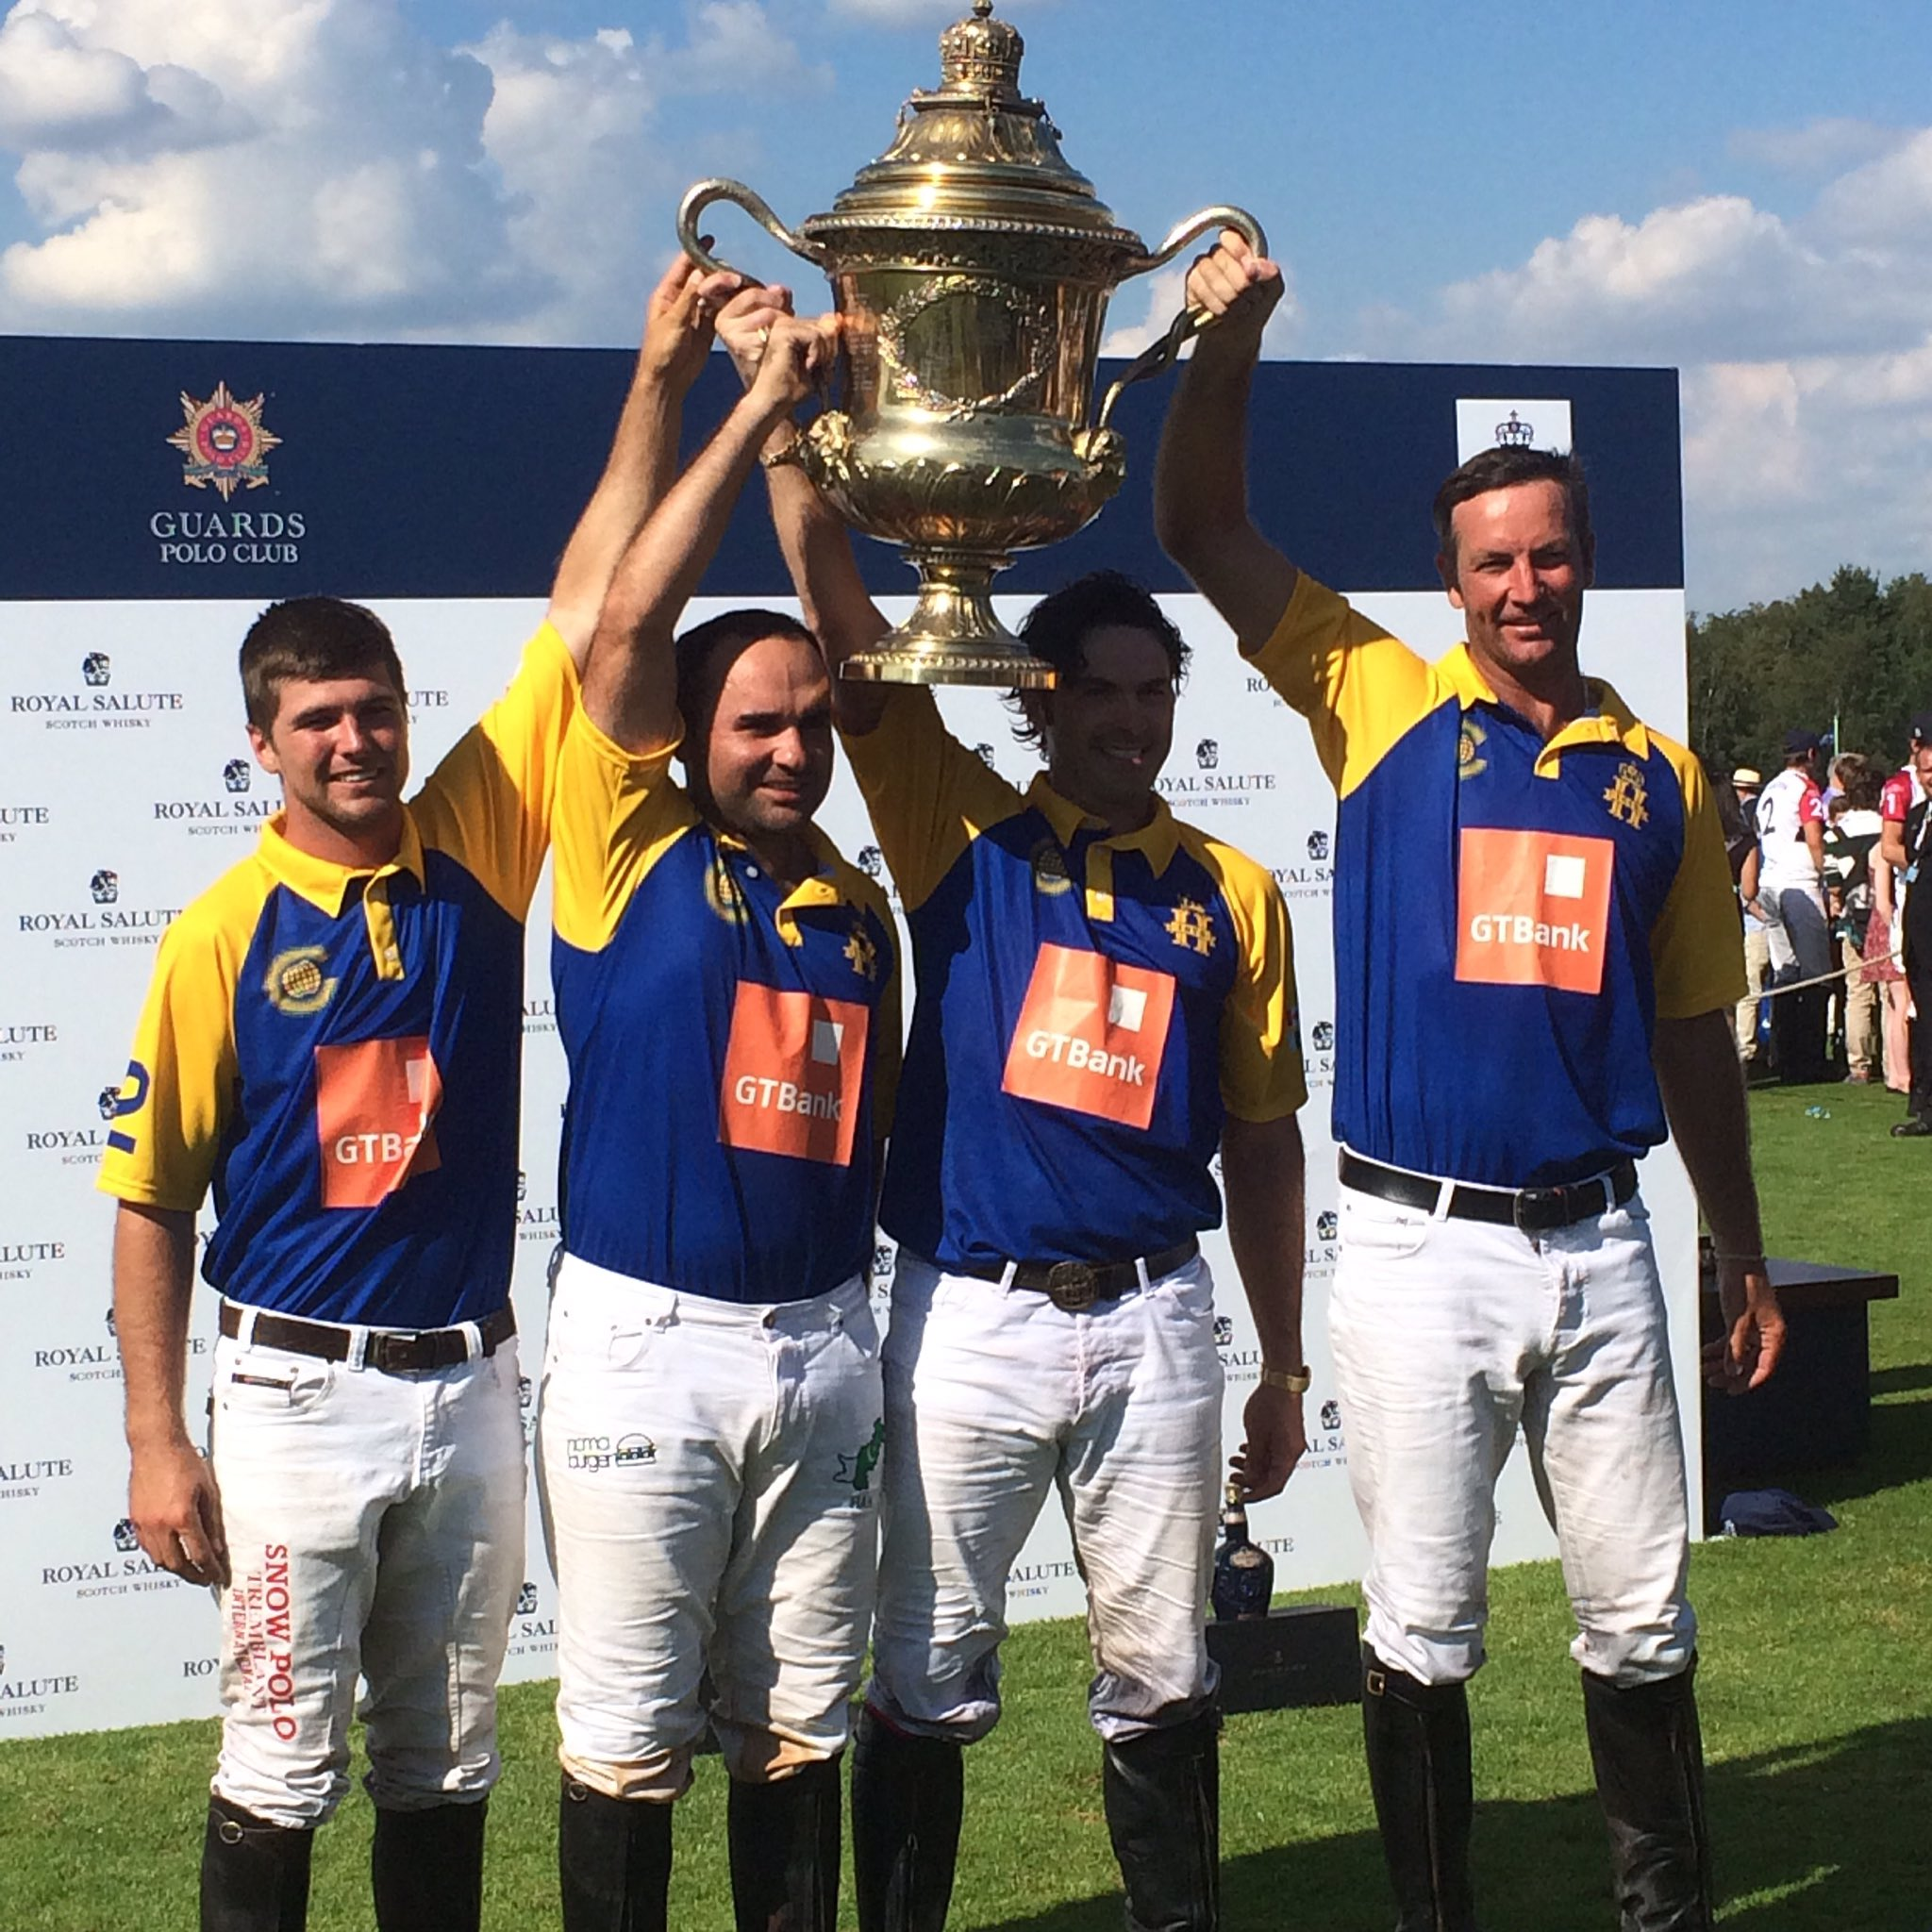 England experiences growing pains in Coronation Cup loss